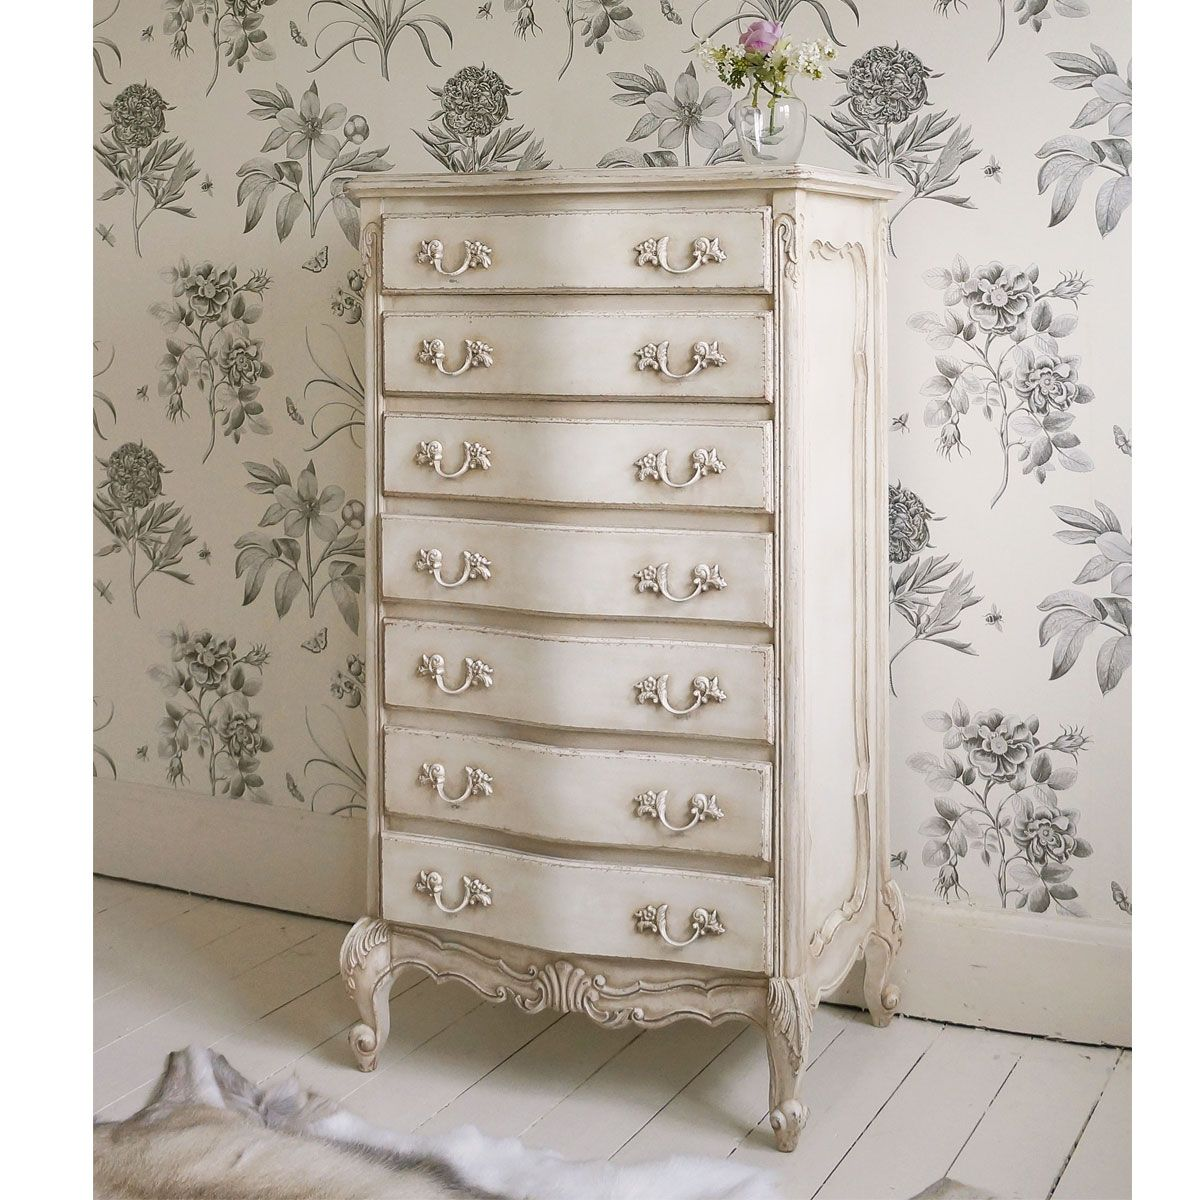 Delphine Shabby Chic Antique White Tallboy by The French Bedroom Company - Delphine Distressed Shabby Chic White Tallboy Chest Shabby